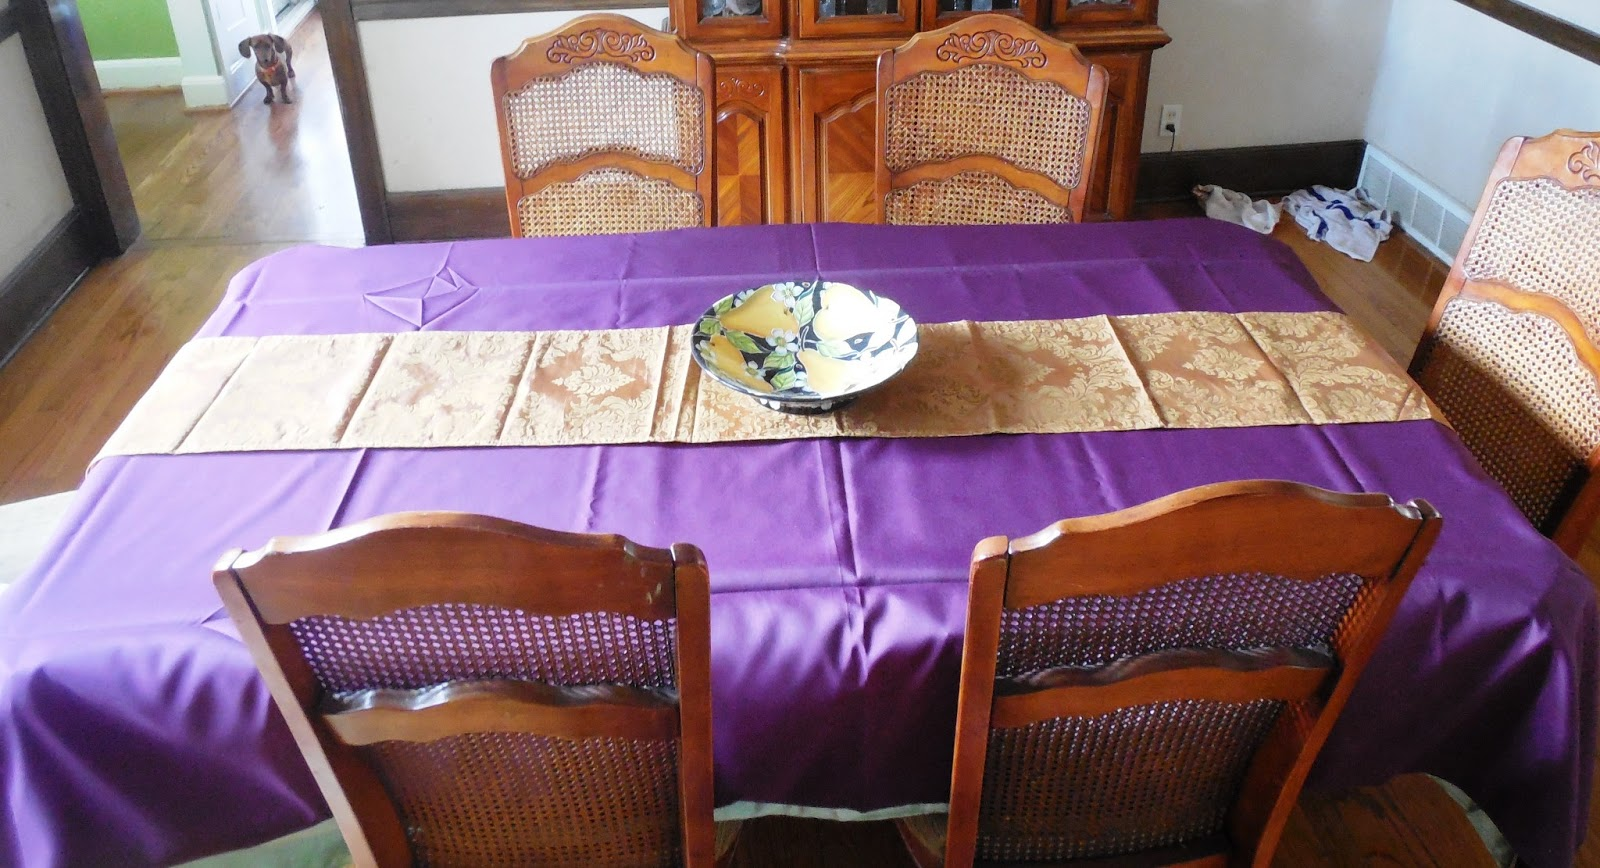 Balsa Circle Review And Giveaway The Nutritionist Reviews. Royal Blue Gold  Lotus Asian Inspired Table Runner